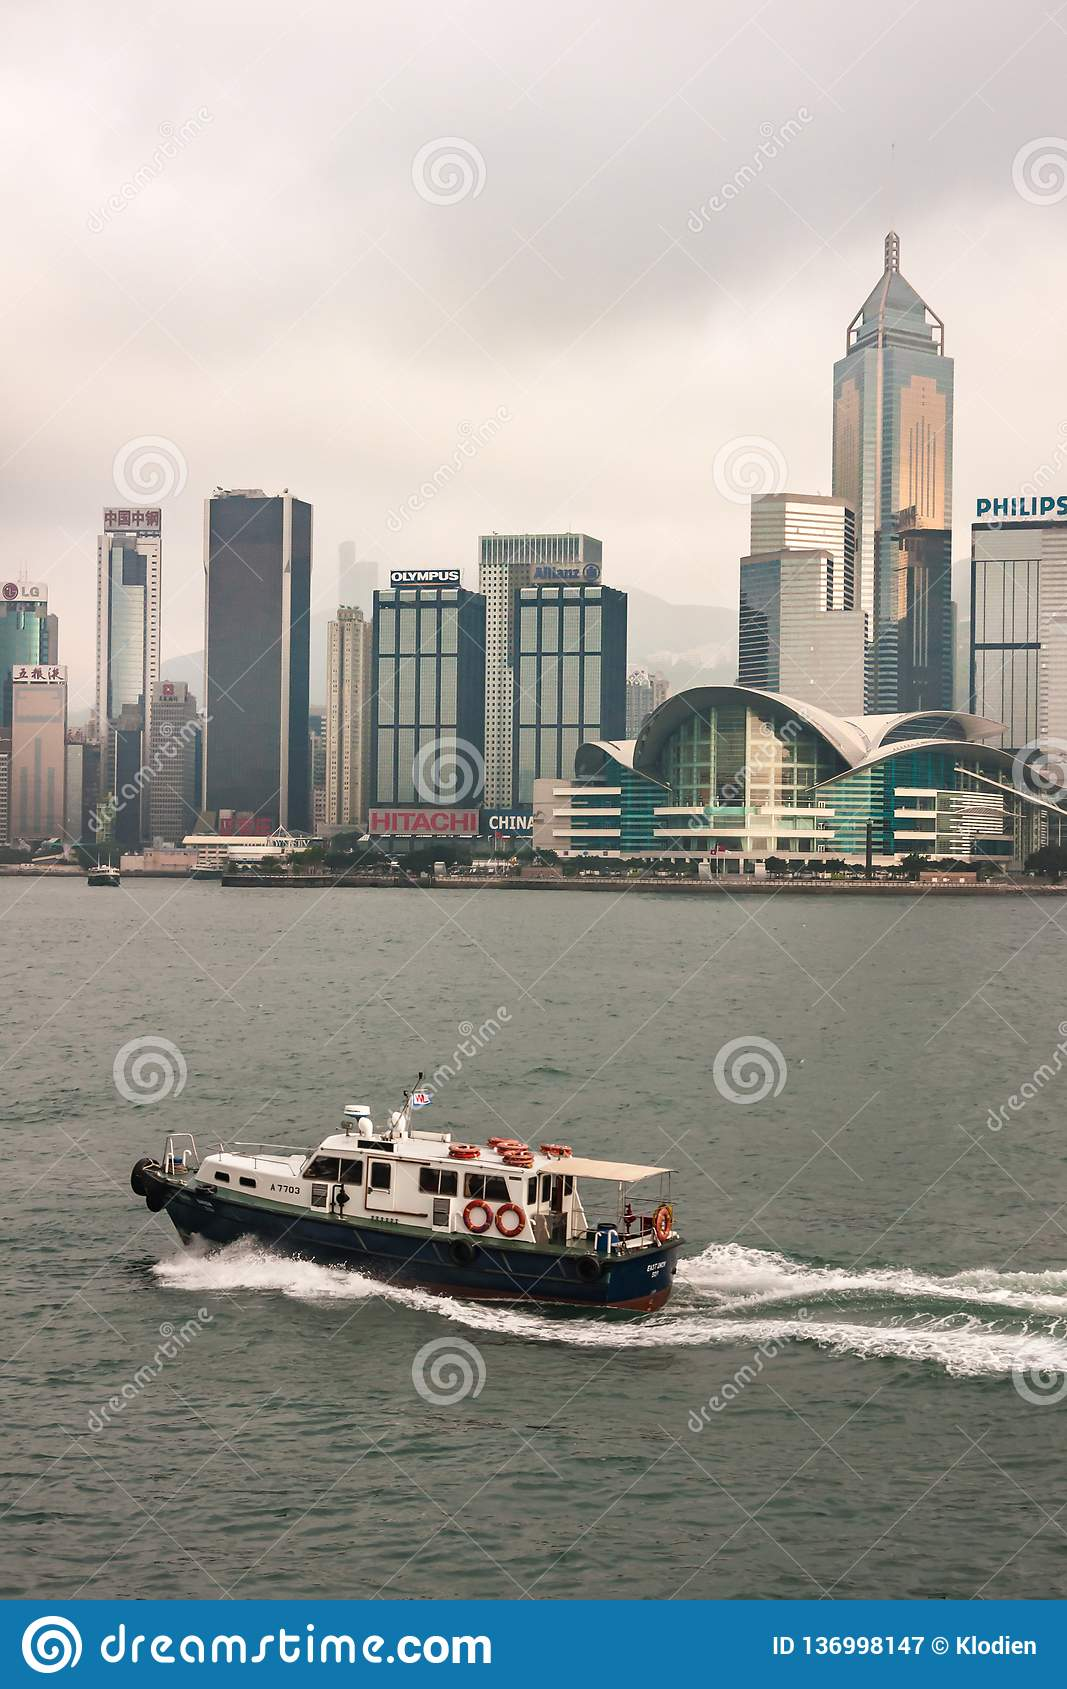 Convention Center and Central Plaza tower skyline Hong Kong Island, China